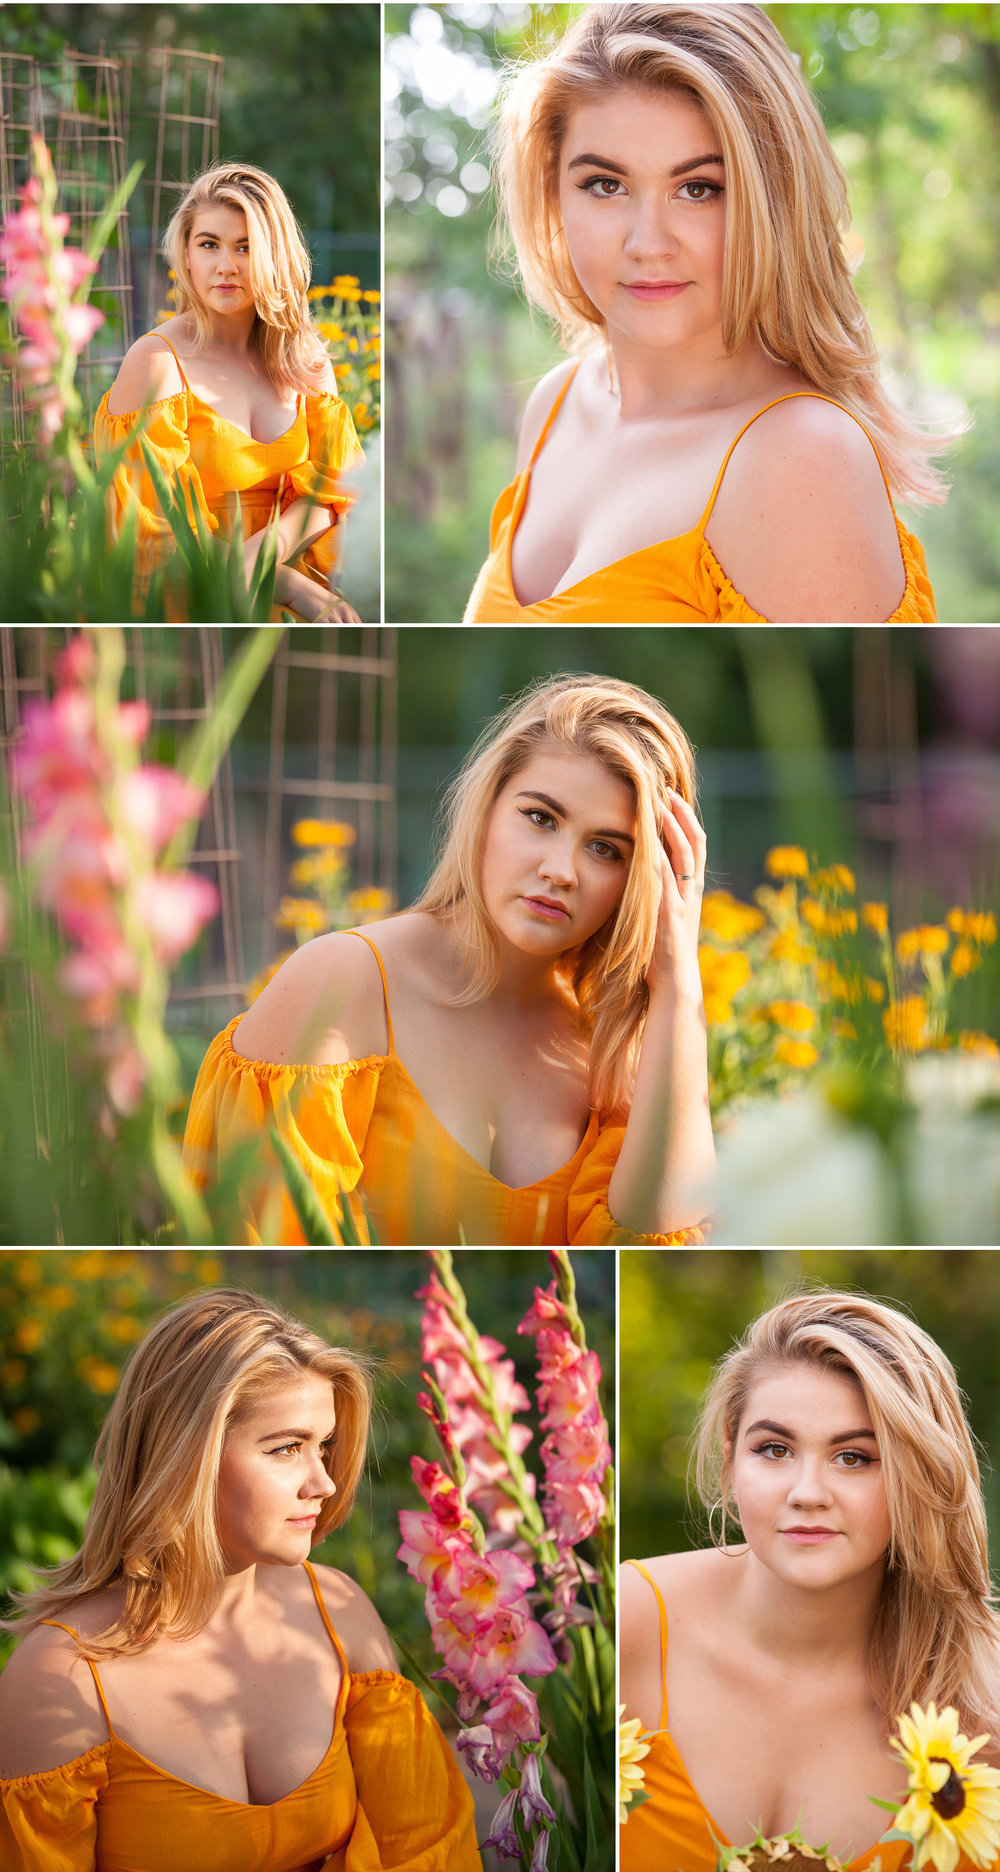 Senior Portraits in summer garden with Denver photographer Jennifer Koskinen, Merritt Portrait Studio